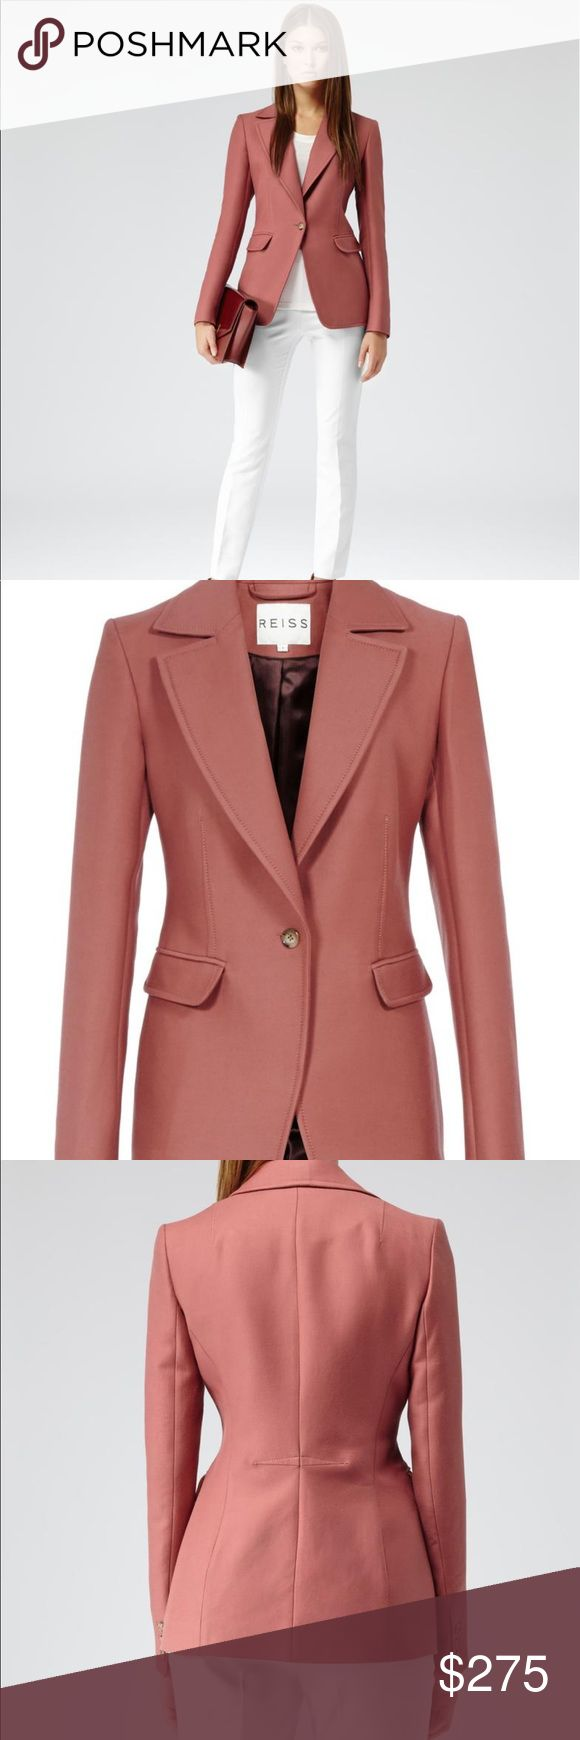 Reiss Beckley Single Breast Fitted Jacket Reiss single-breast fitted jacket. Beckley in berry is a one-button blazer. In a sharp shape, this clean-cut style has a wide collar with notch lapel, exposed dart detail, flap-over pockets to the front and three-button cuffs. Reiss Jackets & Coats Blazers